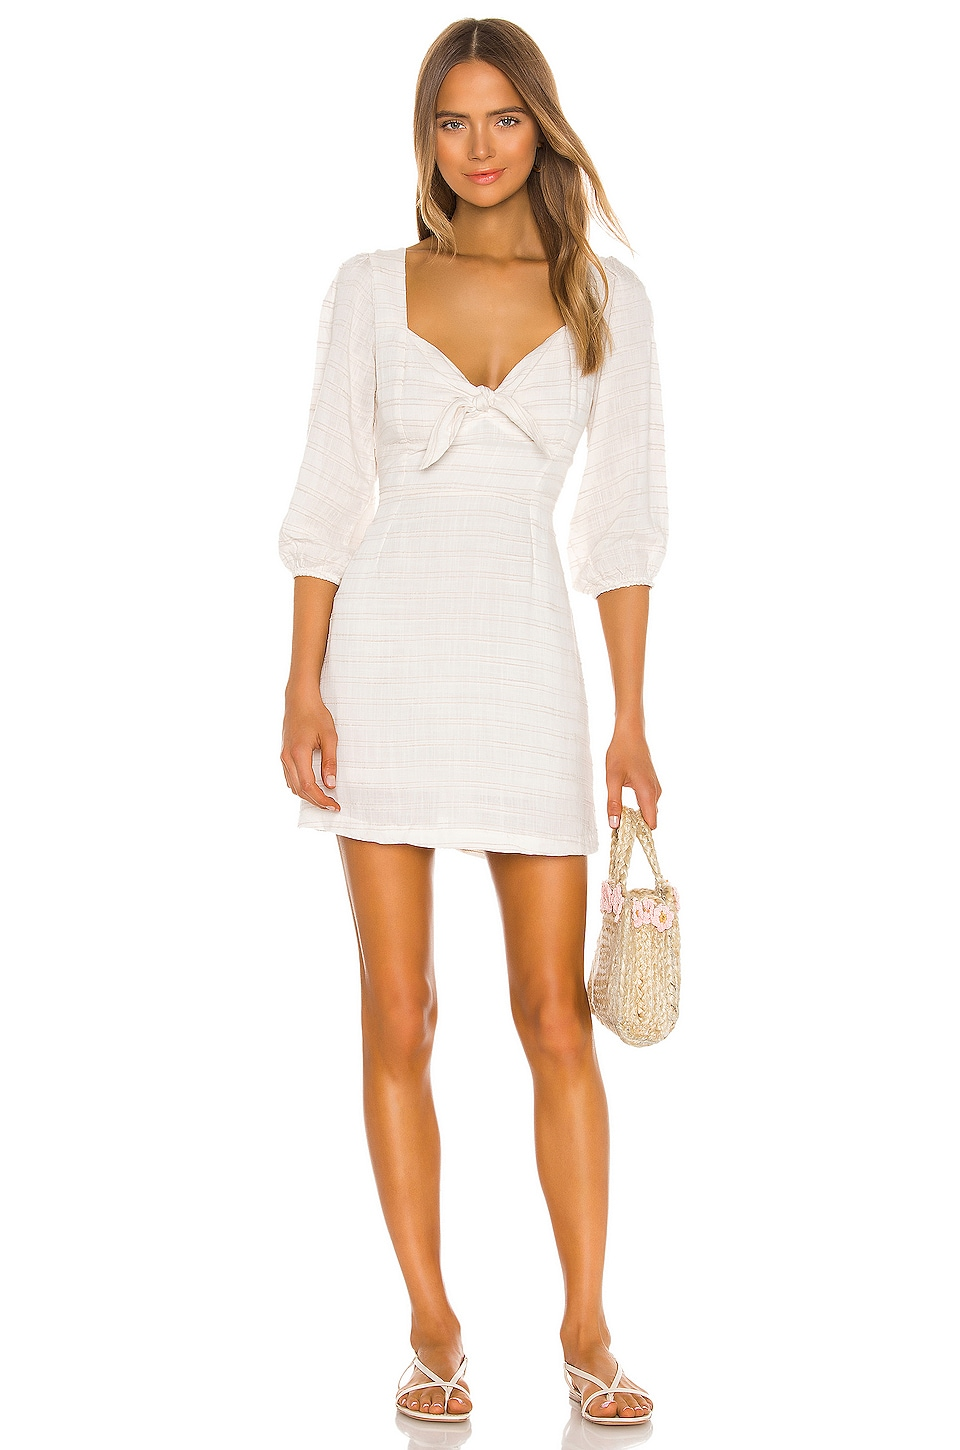 Savannah Dress             L*SPACE                                                                                                       CA$ 169.20 8